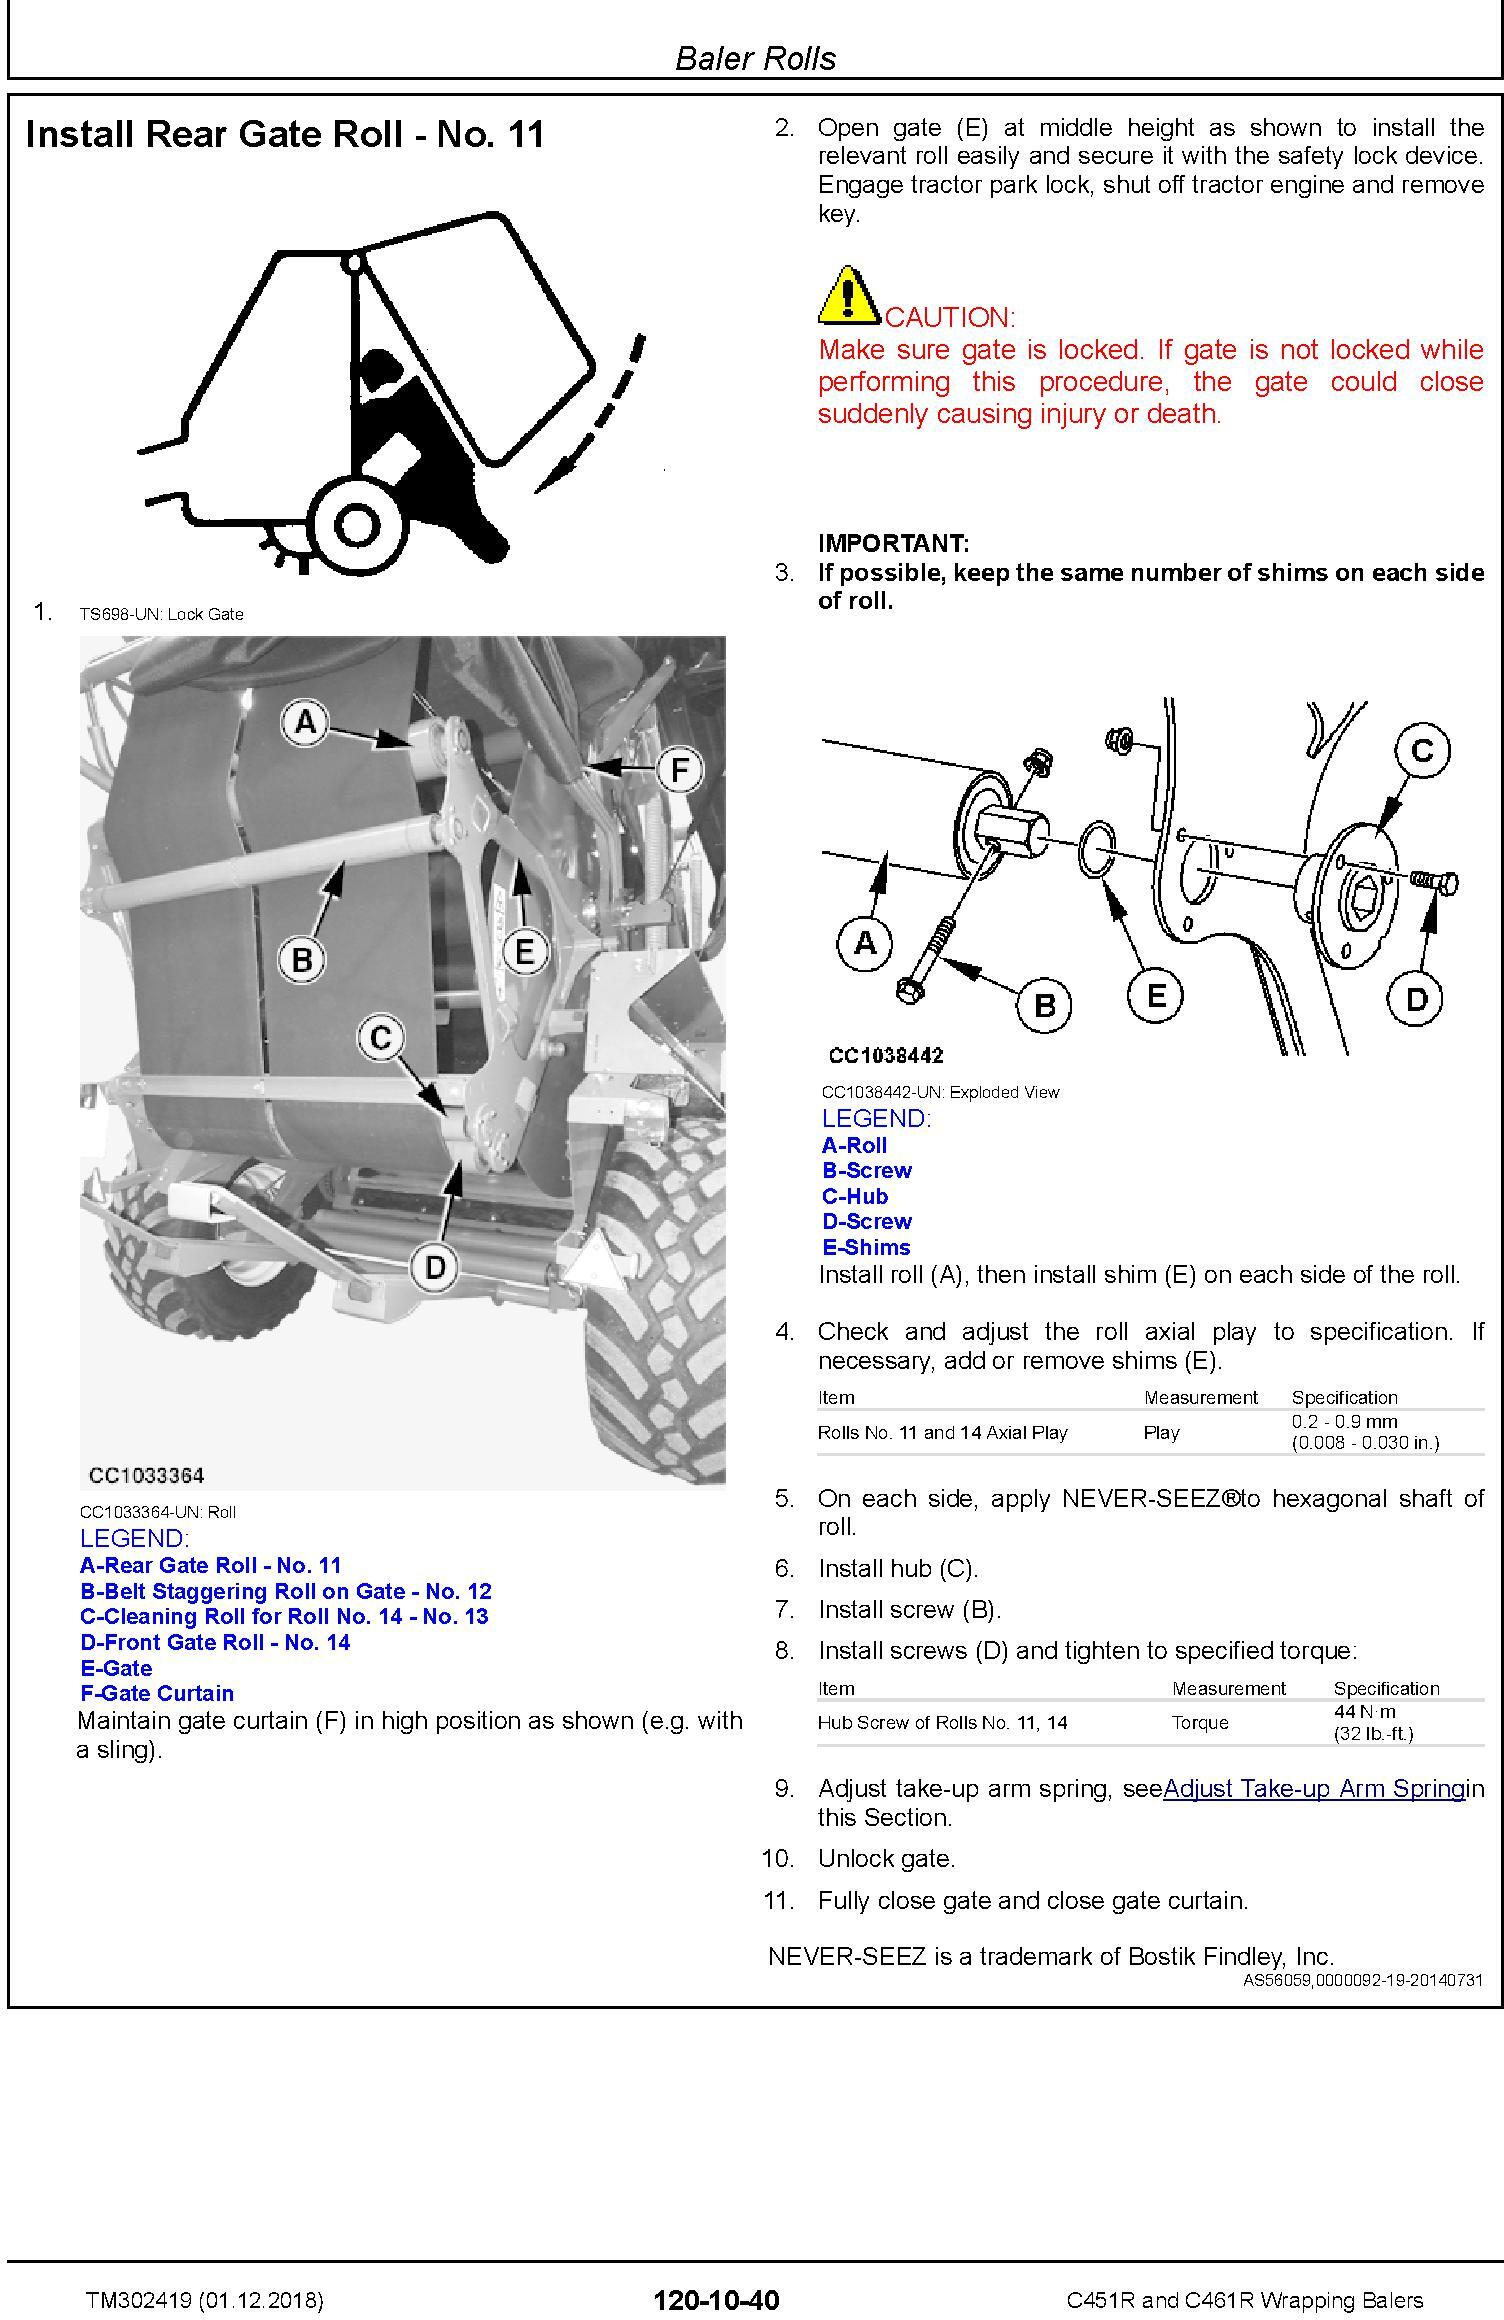 John Deere C451R and C461R Wrapping Balers Service Repair Technical Manual (TM302419) - 3